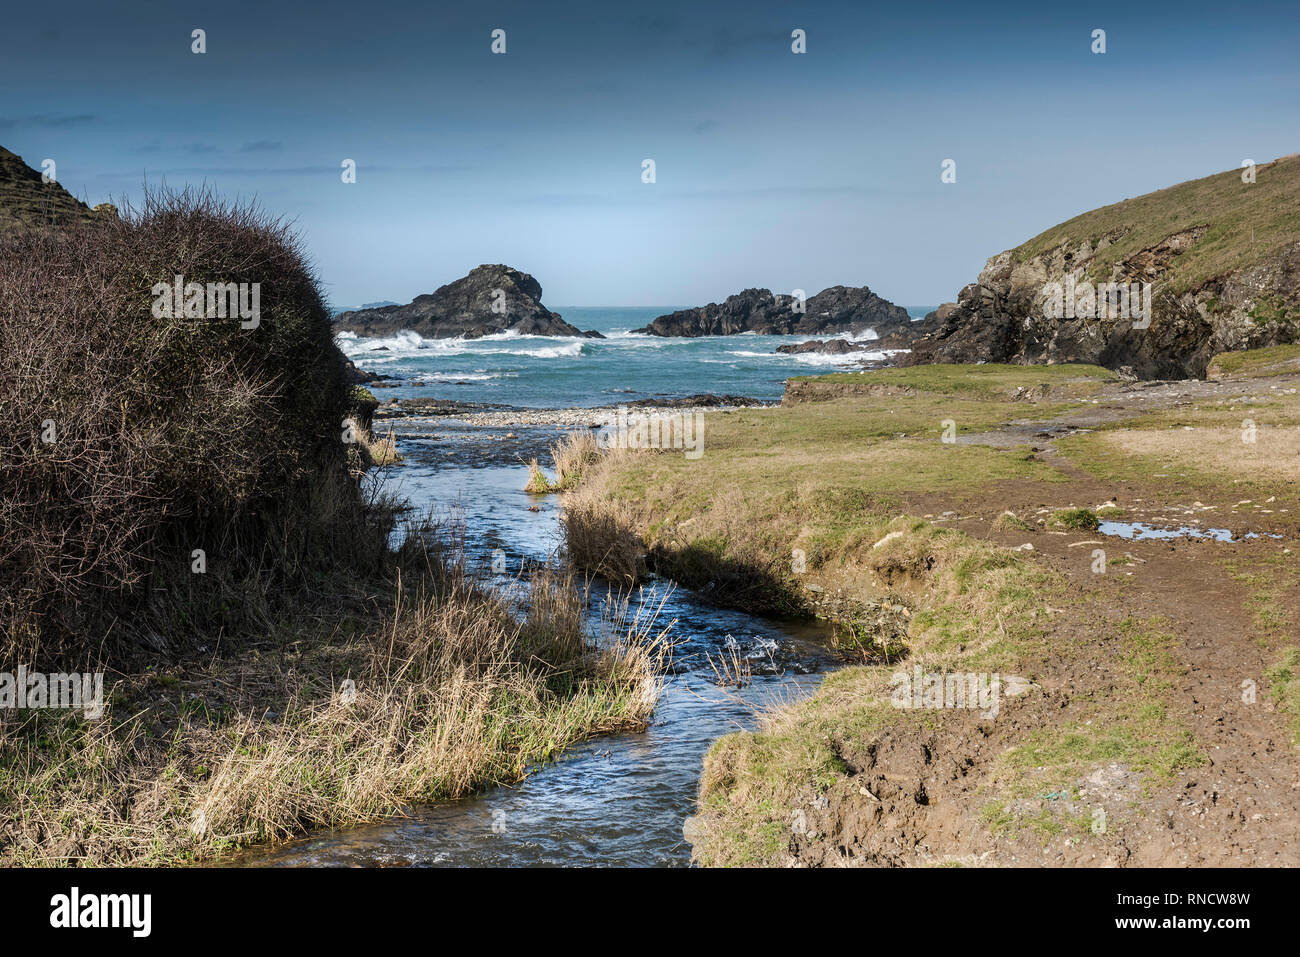 The secluded Porth Mear Cove on the North Cornwall coast. - Stock Image